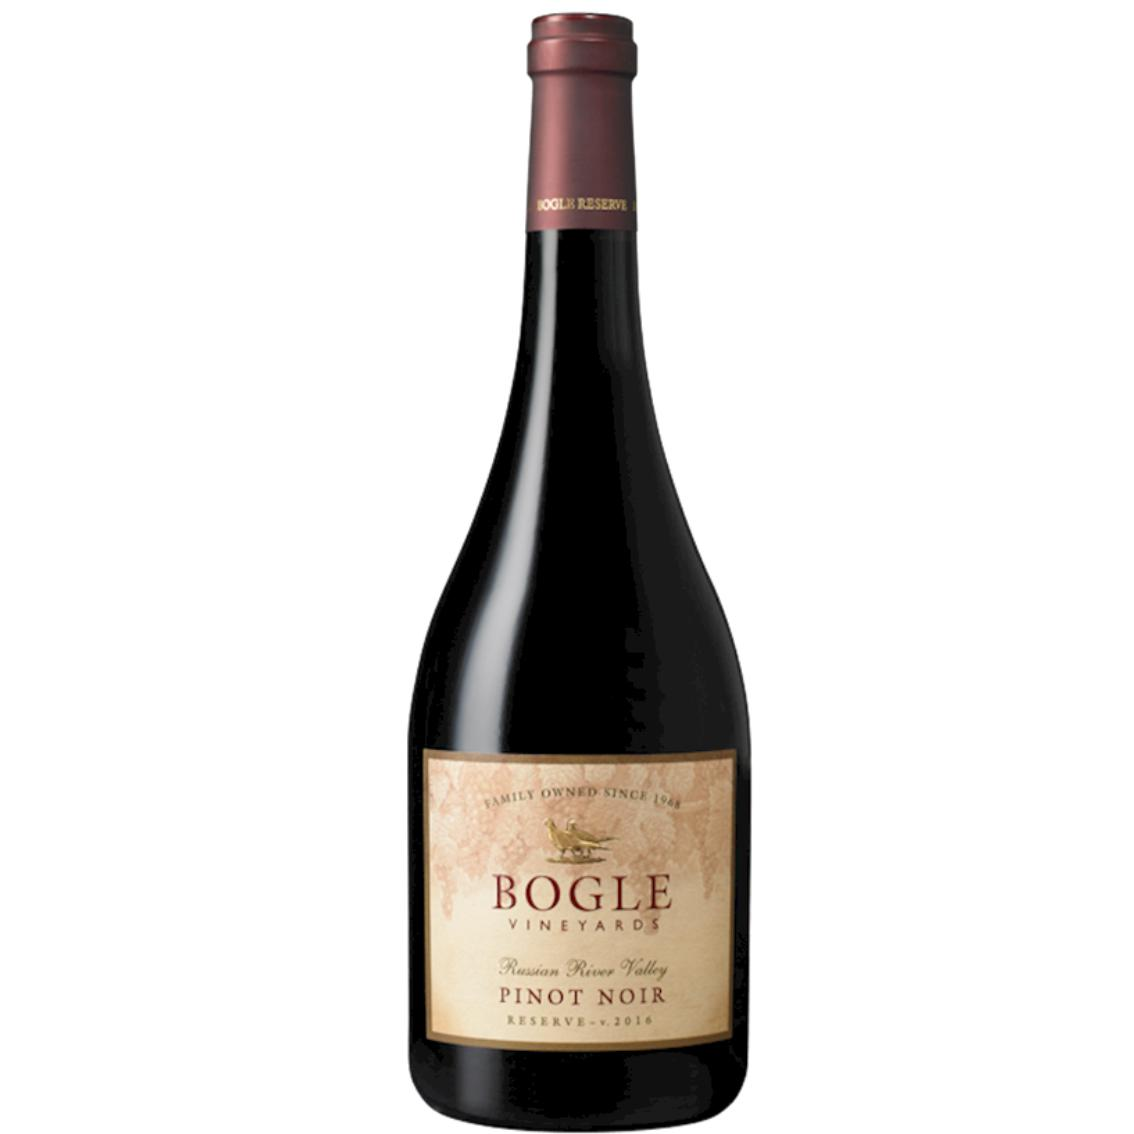 "2016 Reserve Pinot Noir ""Russian River Valley"" - Bogle Vineyards"